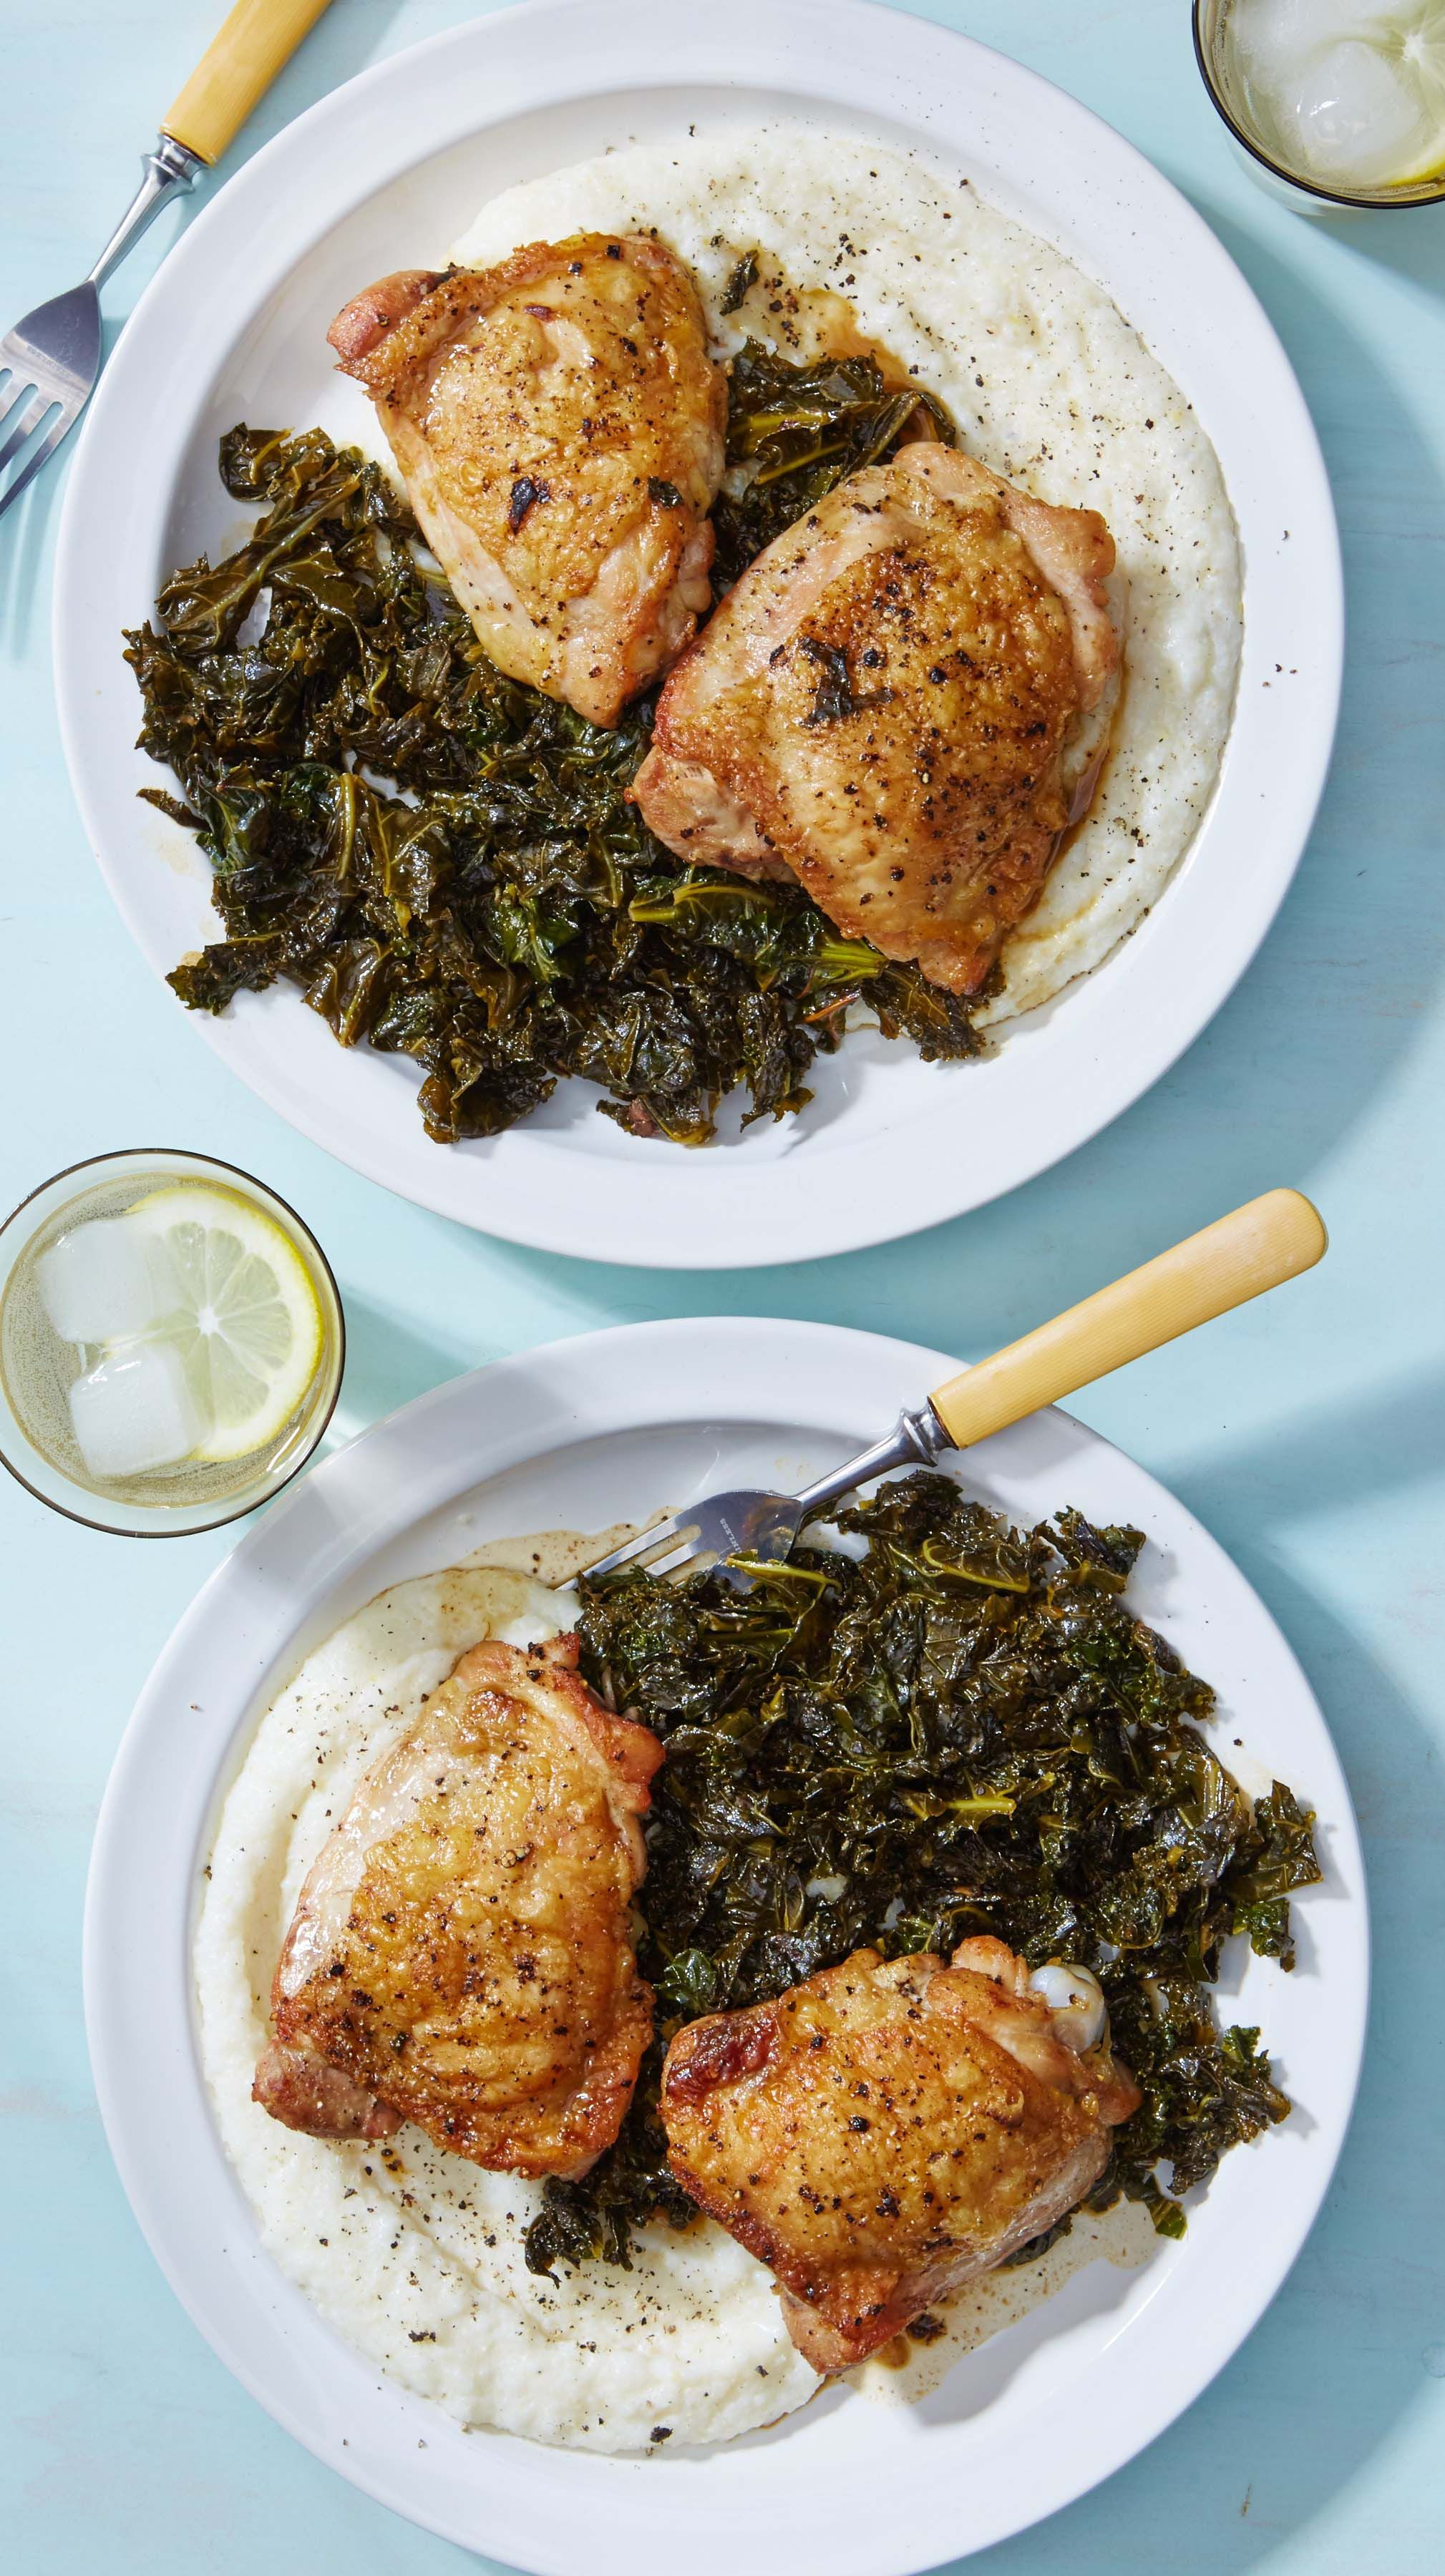 It's easy to love braised chicken, and even easier to love the true stars of this dish: cheesy grits and wilted kale! Sign up for Martha & Marley Spoon to get recipes and ingredients for hearty meals delivered to your door each week!